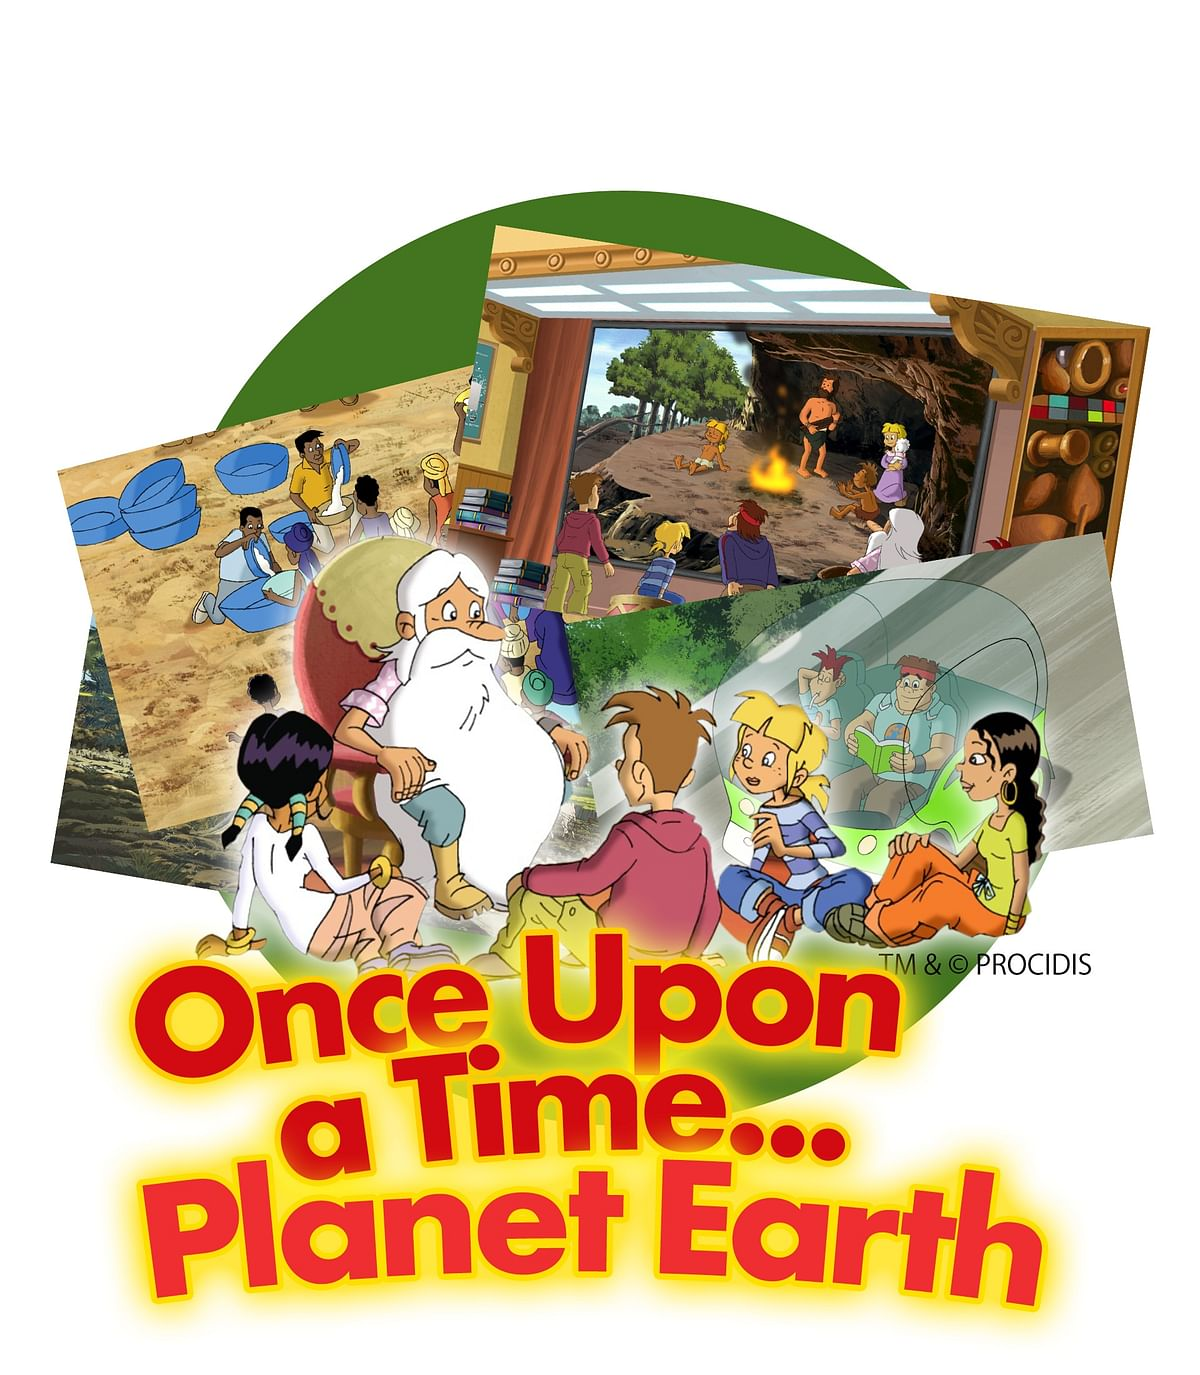 One of DVL's launch properties: <i>Once upon a time… Planet Earth. </i>